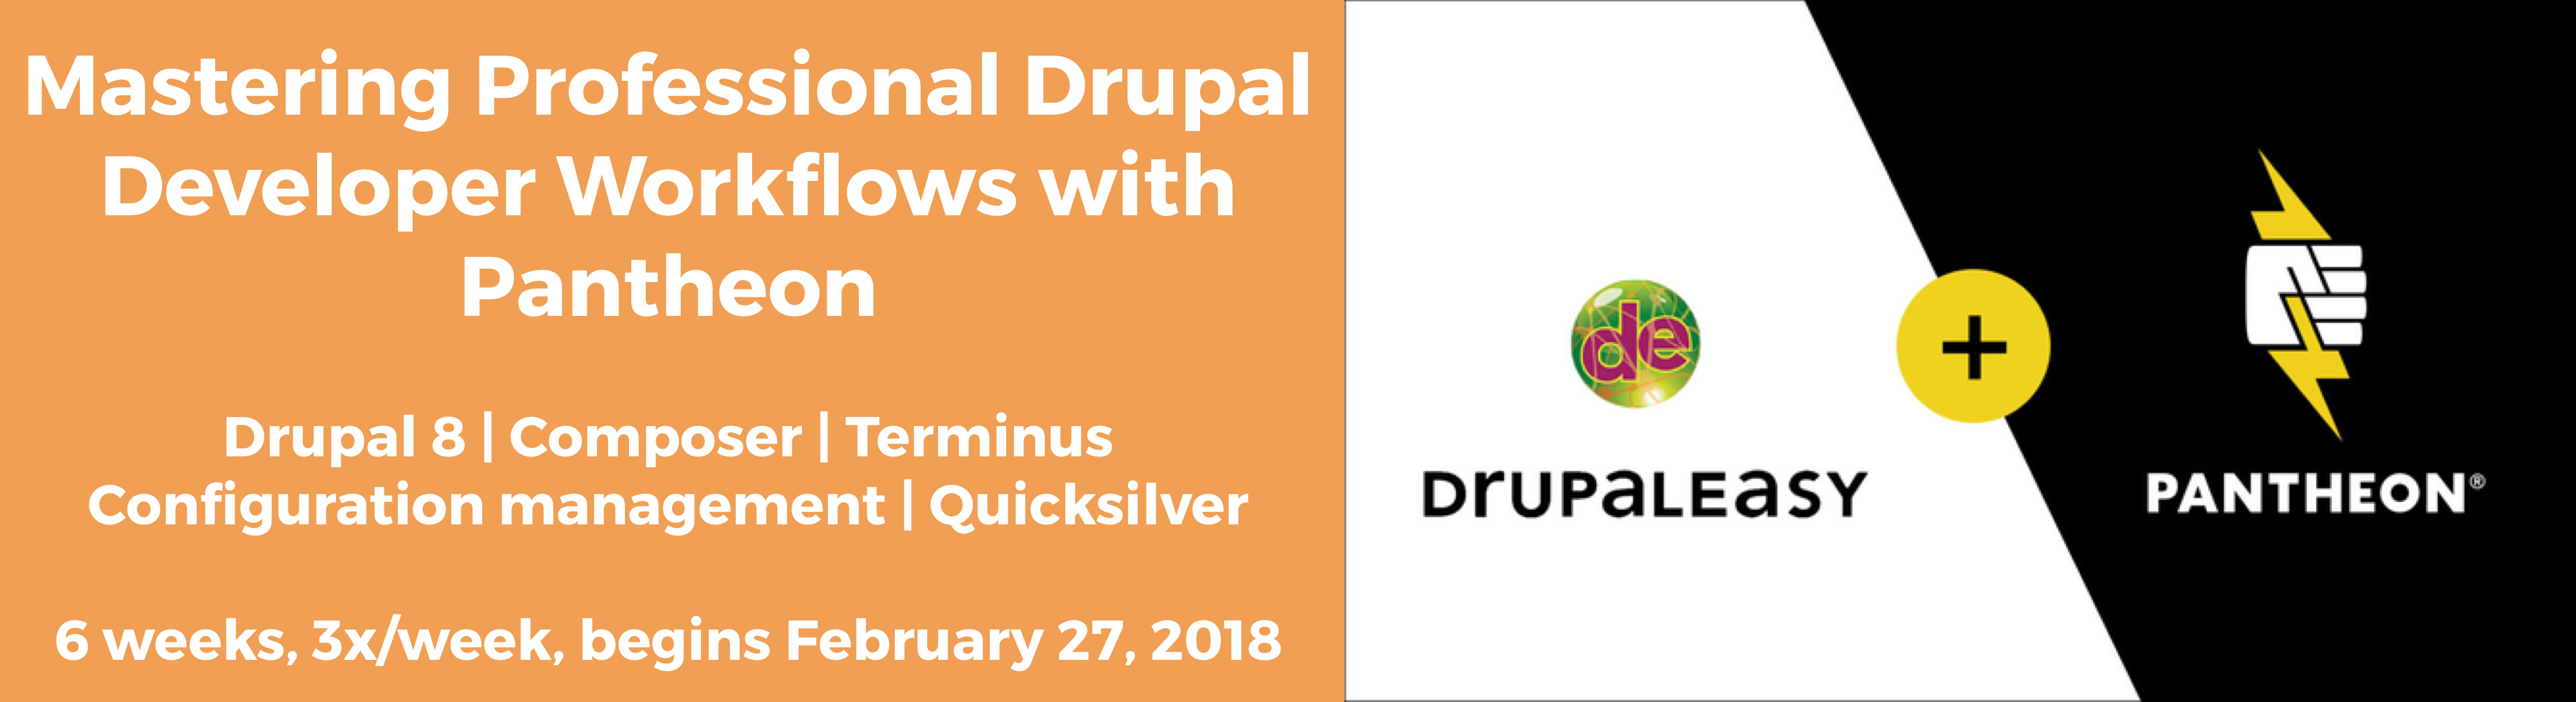 DrupalEasy + Pantheon, Winter 2017 session begins Feb 27.